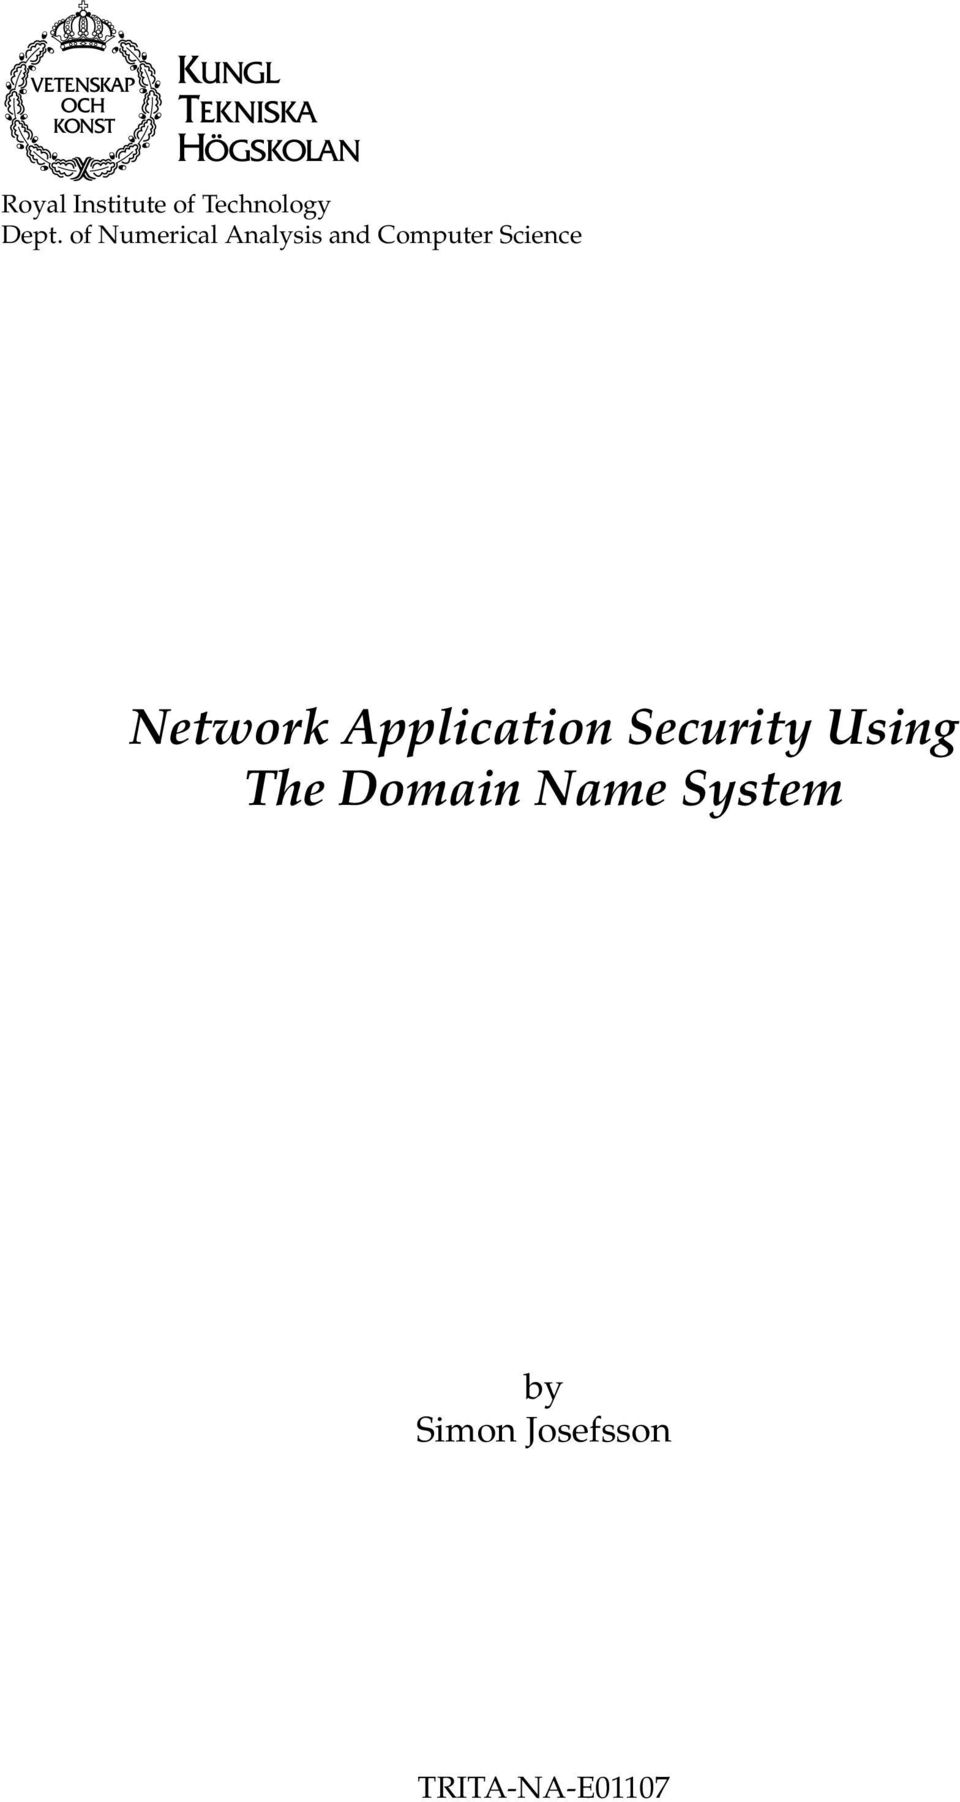 Network Application Security Using The